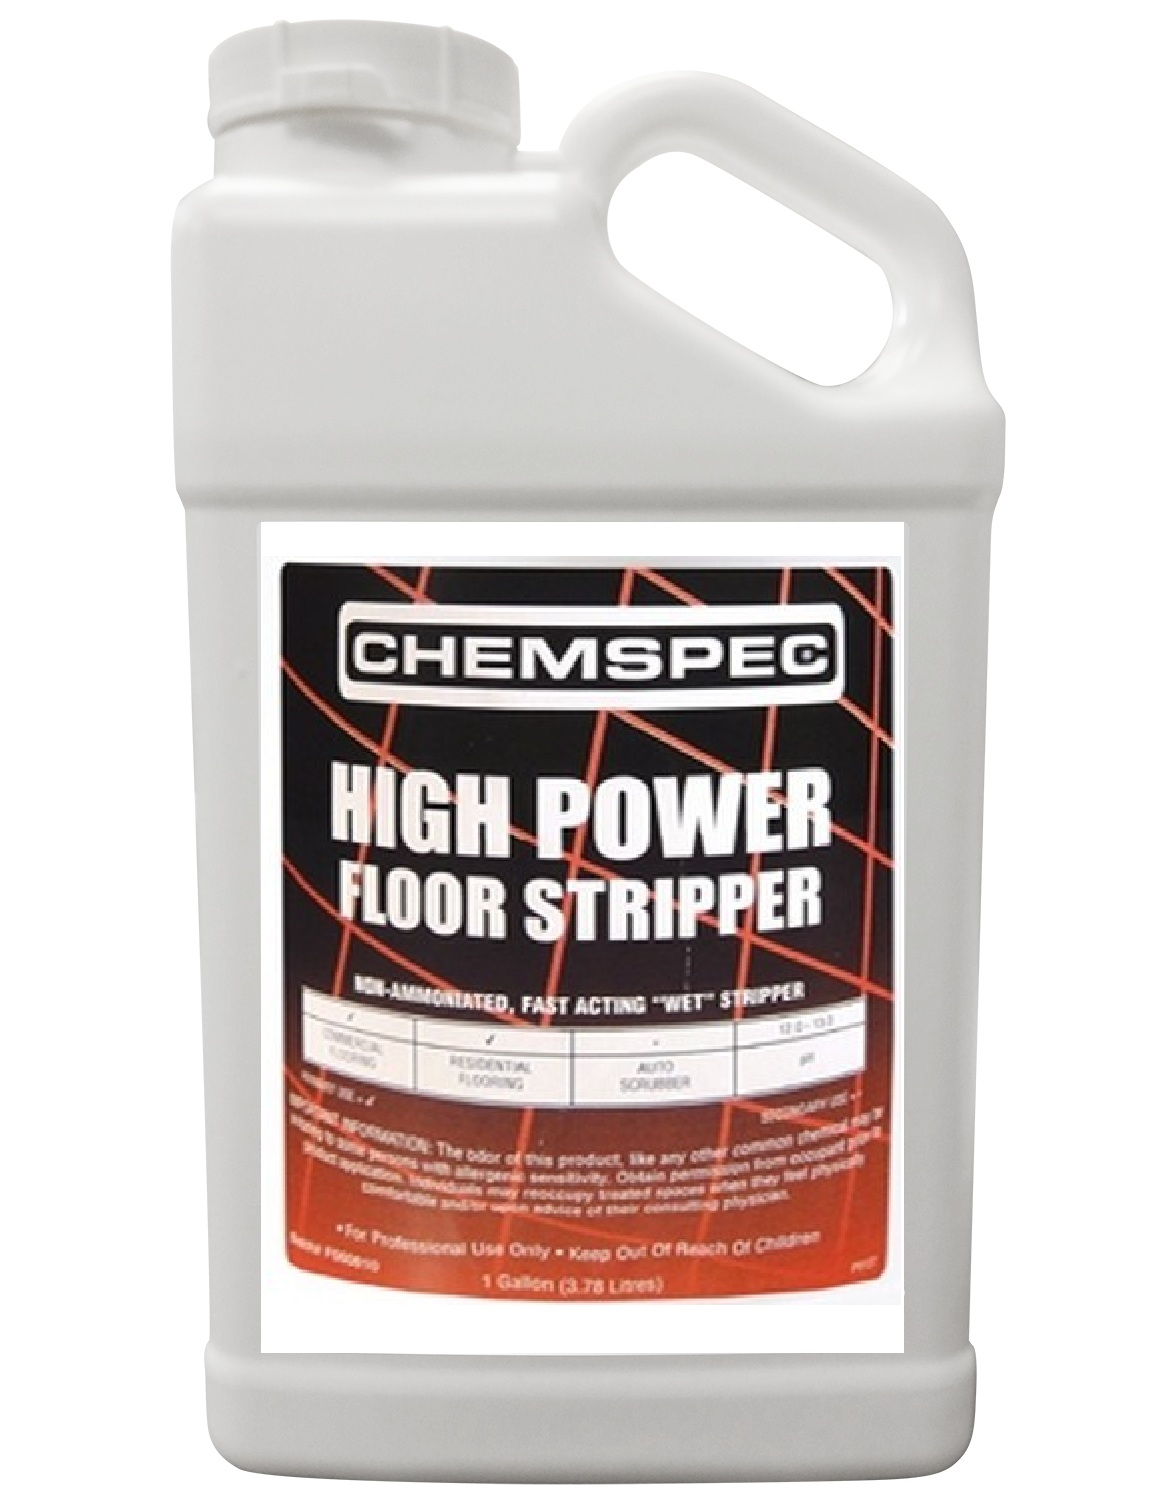 High Power Floor Stripper